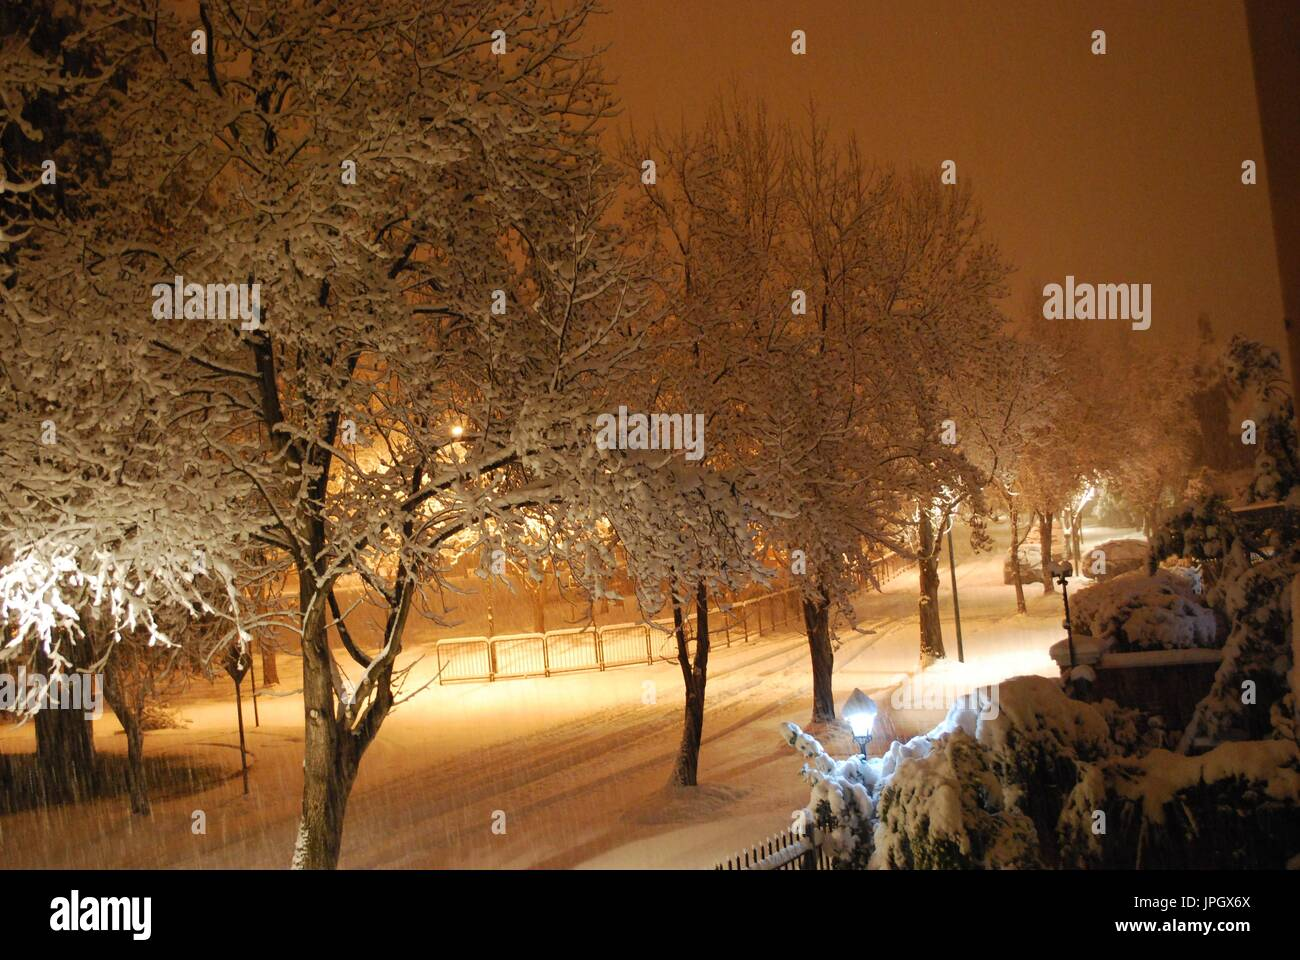 Snowing on the street at night - Stock Image